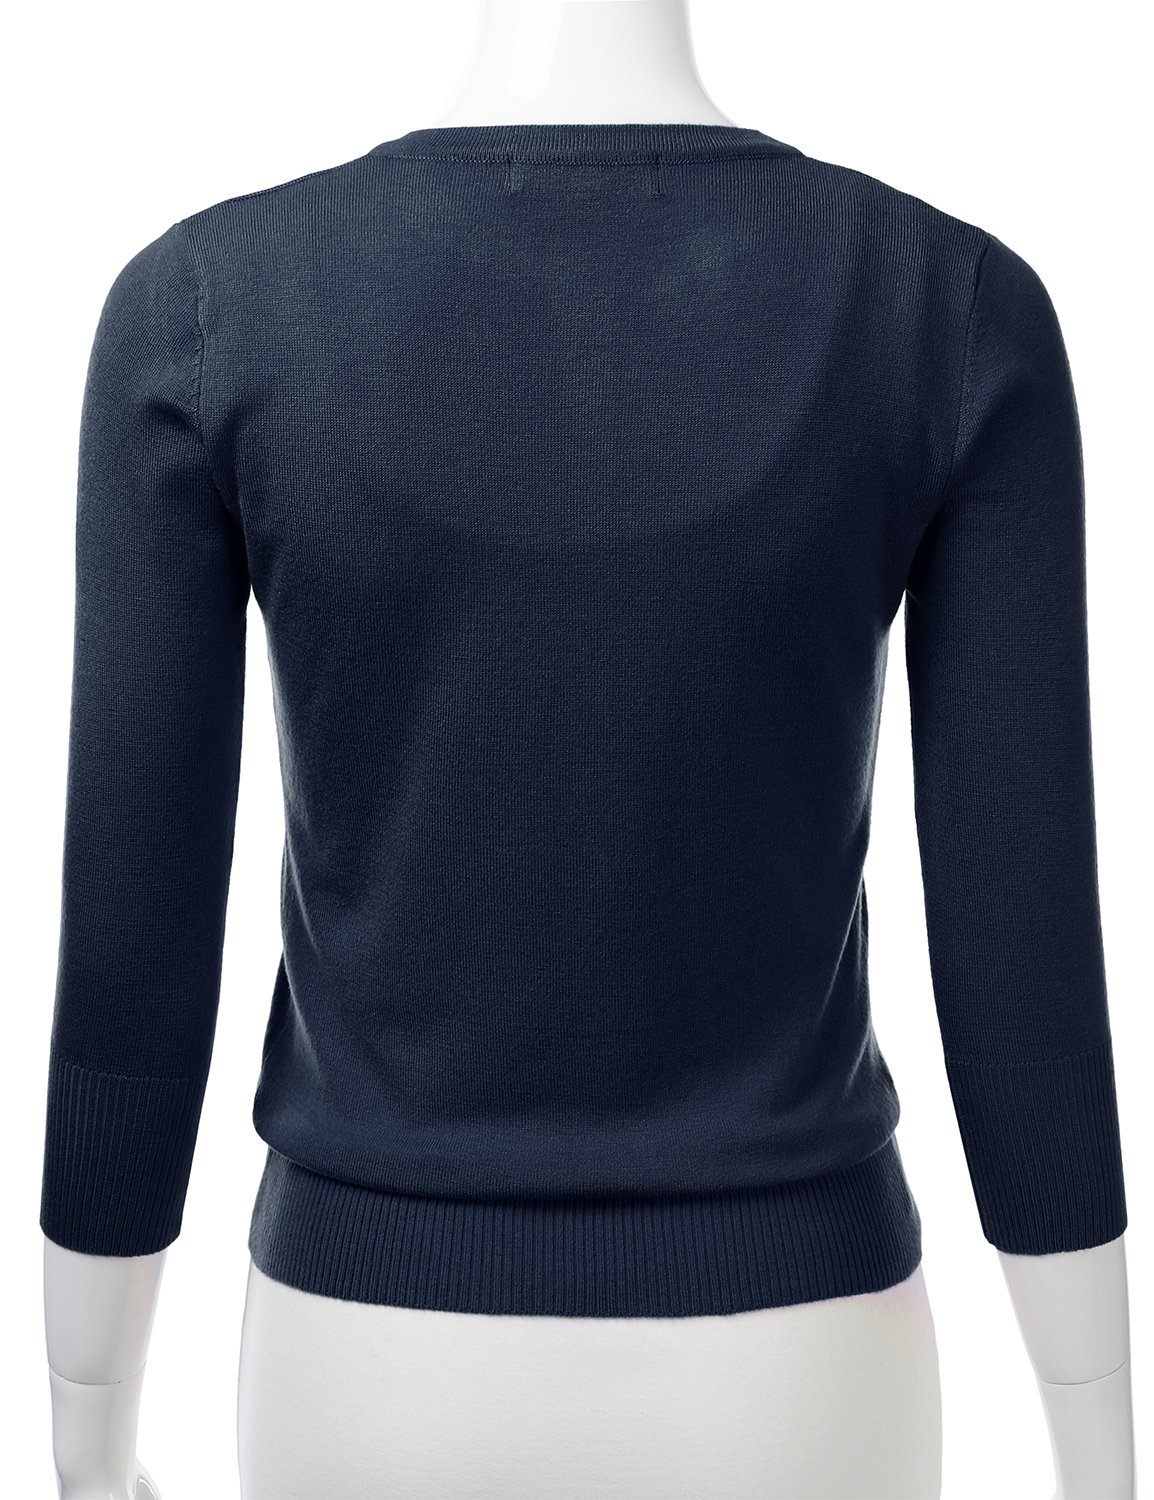 FLORIA Womens Button Down 3/4 Sleeve V-Neck Stretch Knit Cardigan Sweater Navy M by FLORIA (Image #3)